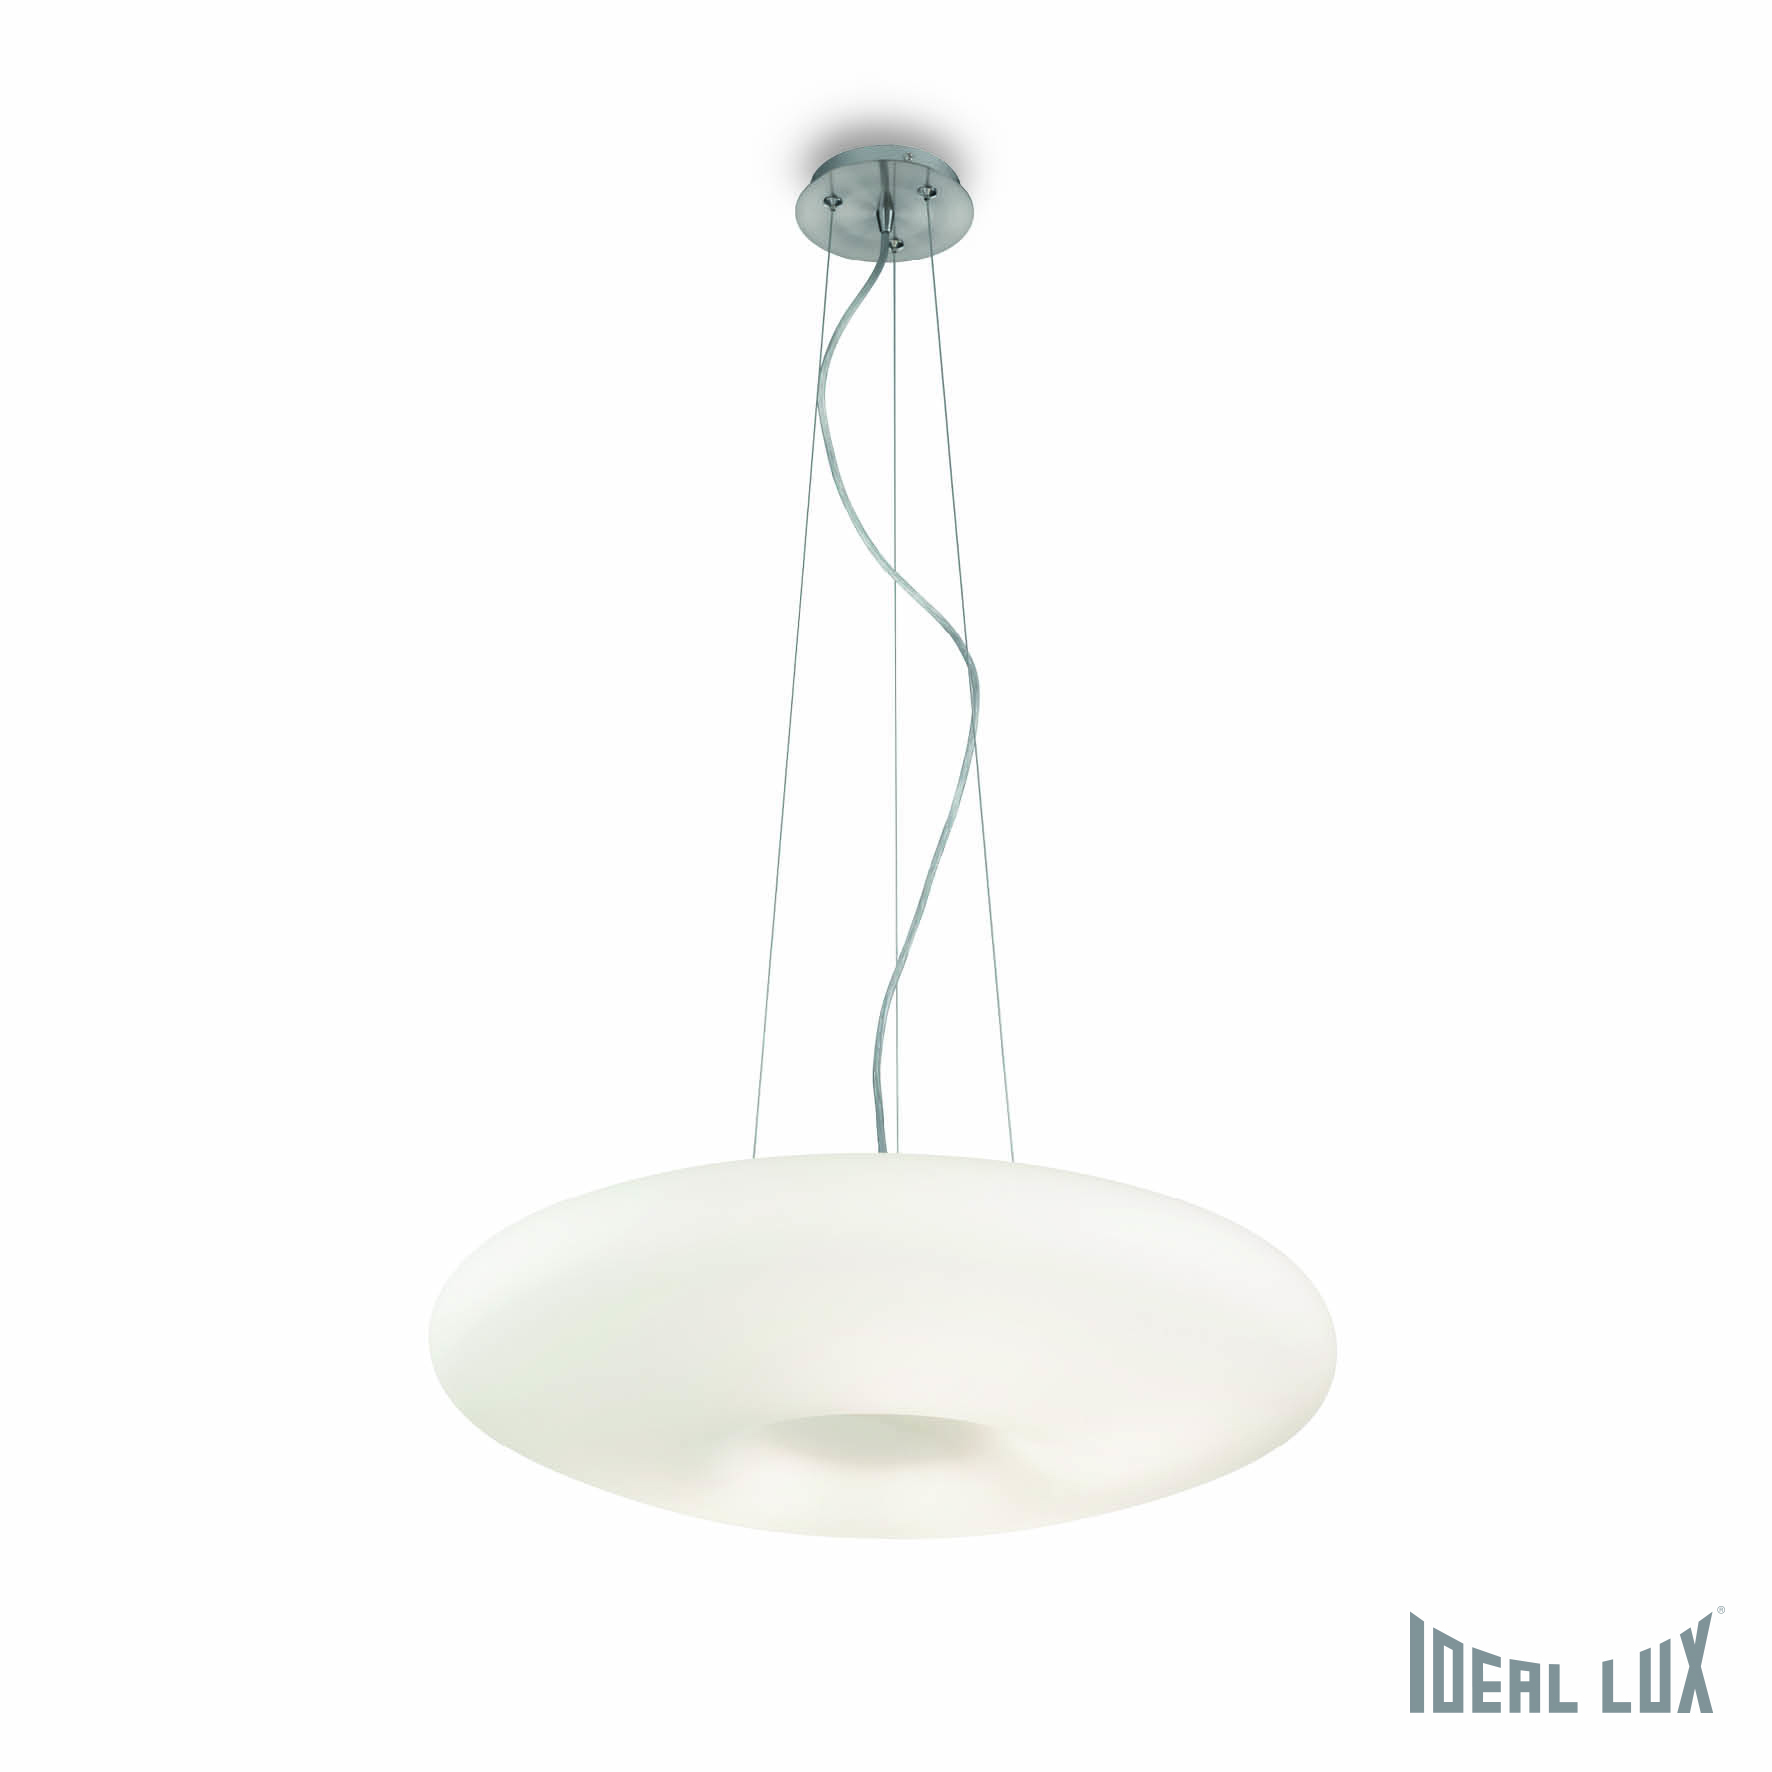 Светильник подвесной Ideal Lux Glory GLORY SP3 D50 ideal lux люстра ideal lux le roy sp3